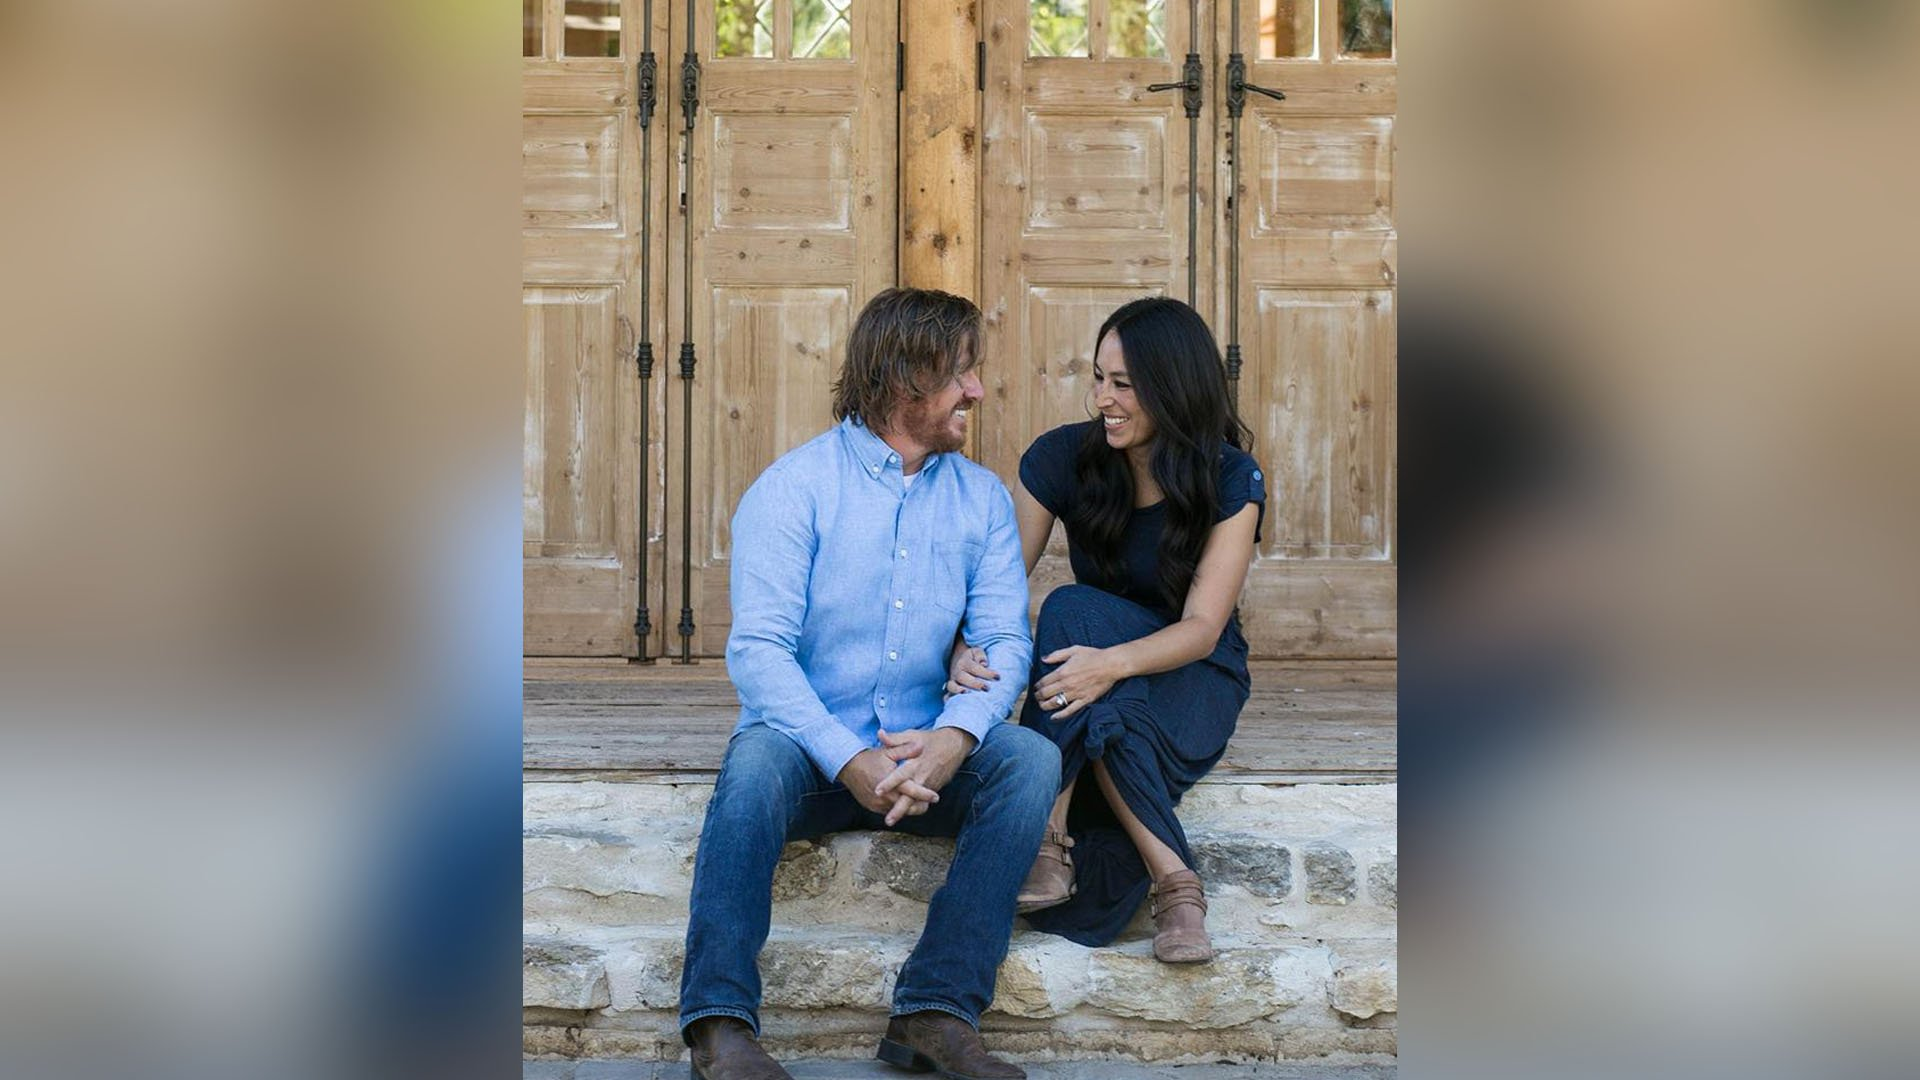 EPA reaches settlement with 'Fixer Upper' stars